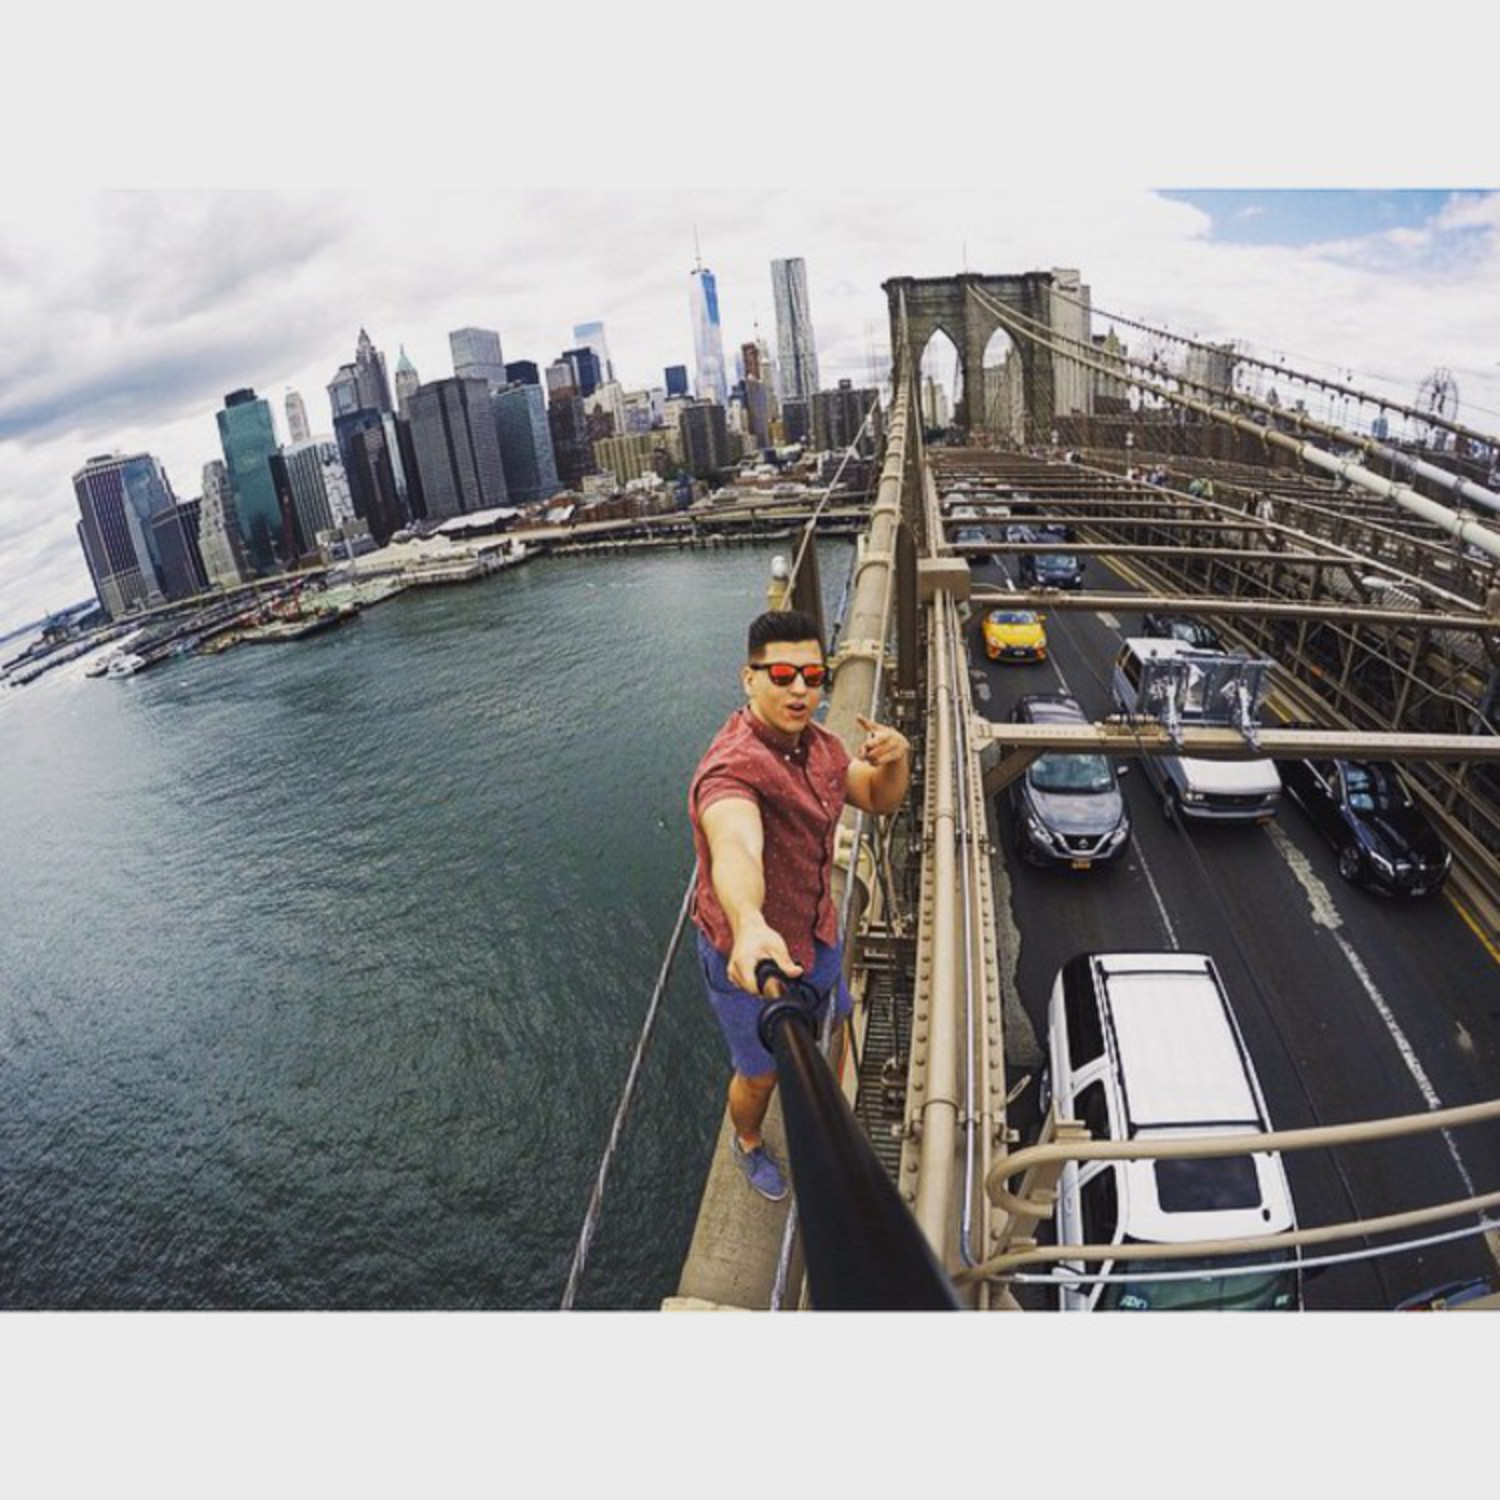 😎 #newyorkcity#nyc#again#vscocam#gopro#goprophotography#adventureaddiction @kameleonz